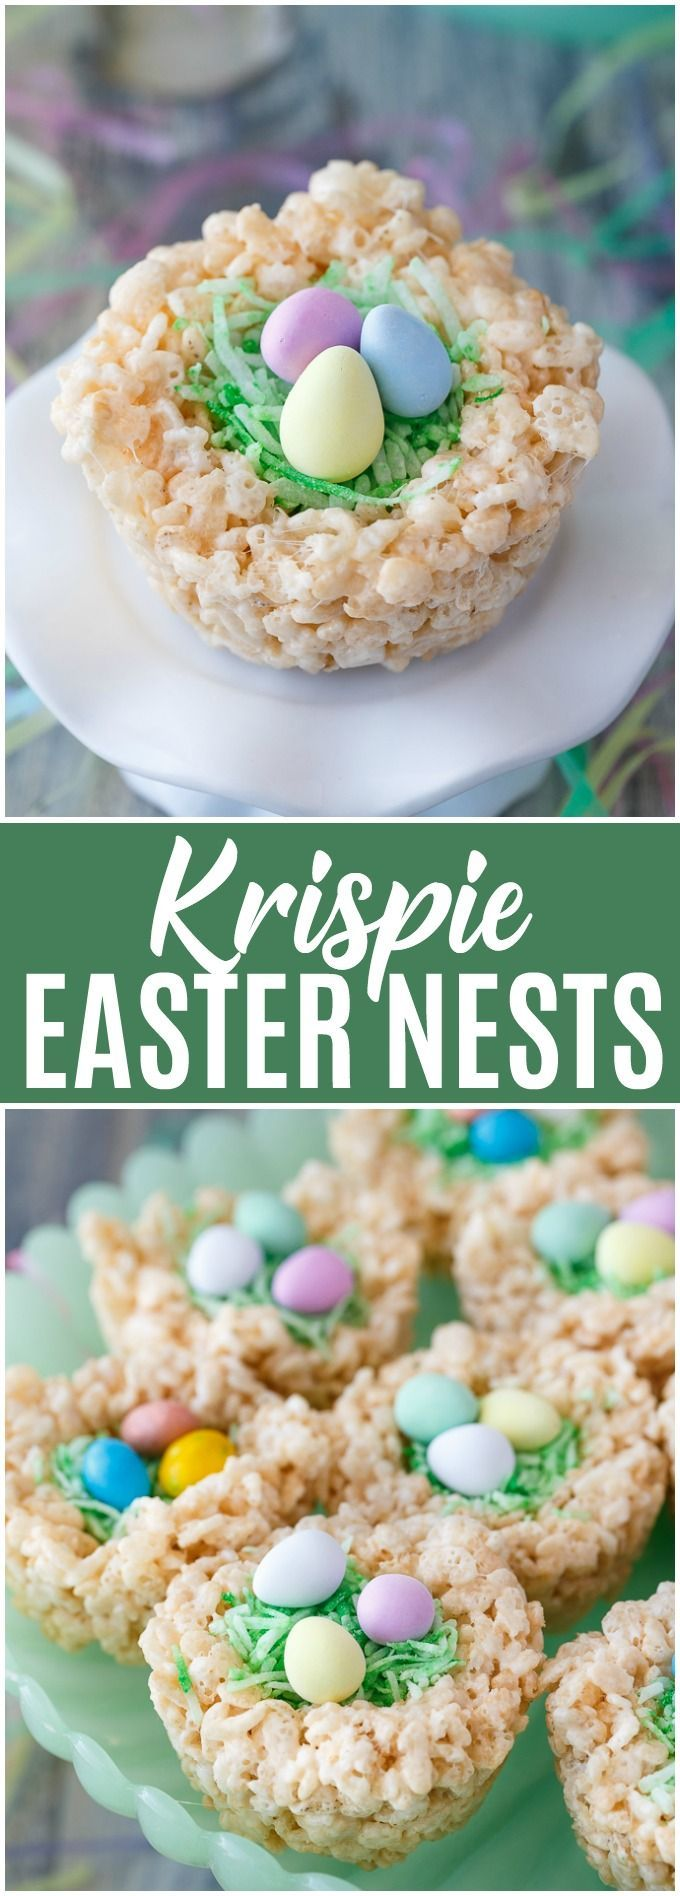 Krispie Easter Nests - This easy Easter dessert is fun to make and eat! Kids love to help decorate with colourful green grass and Easter chocolate and candy. #ad